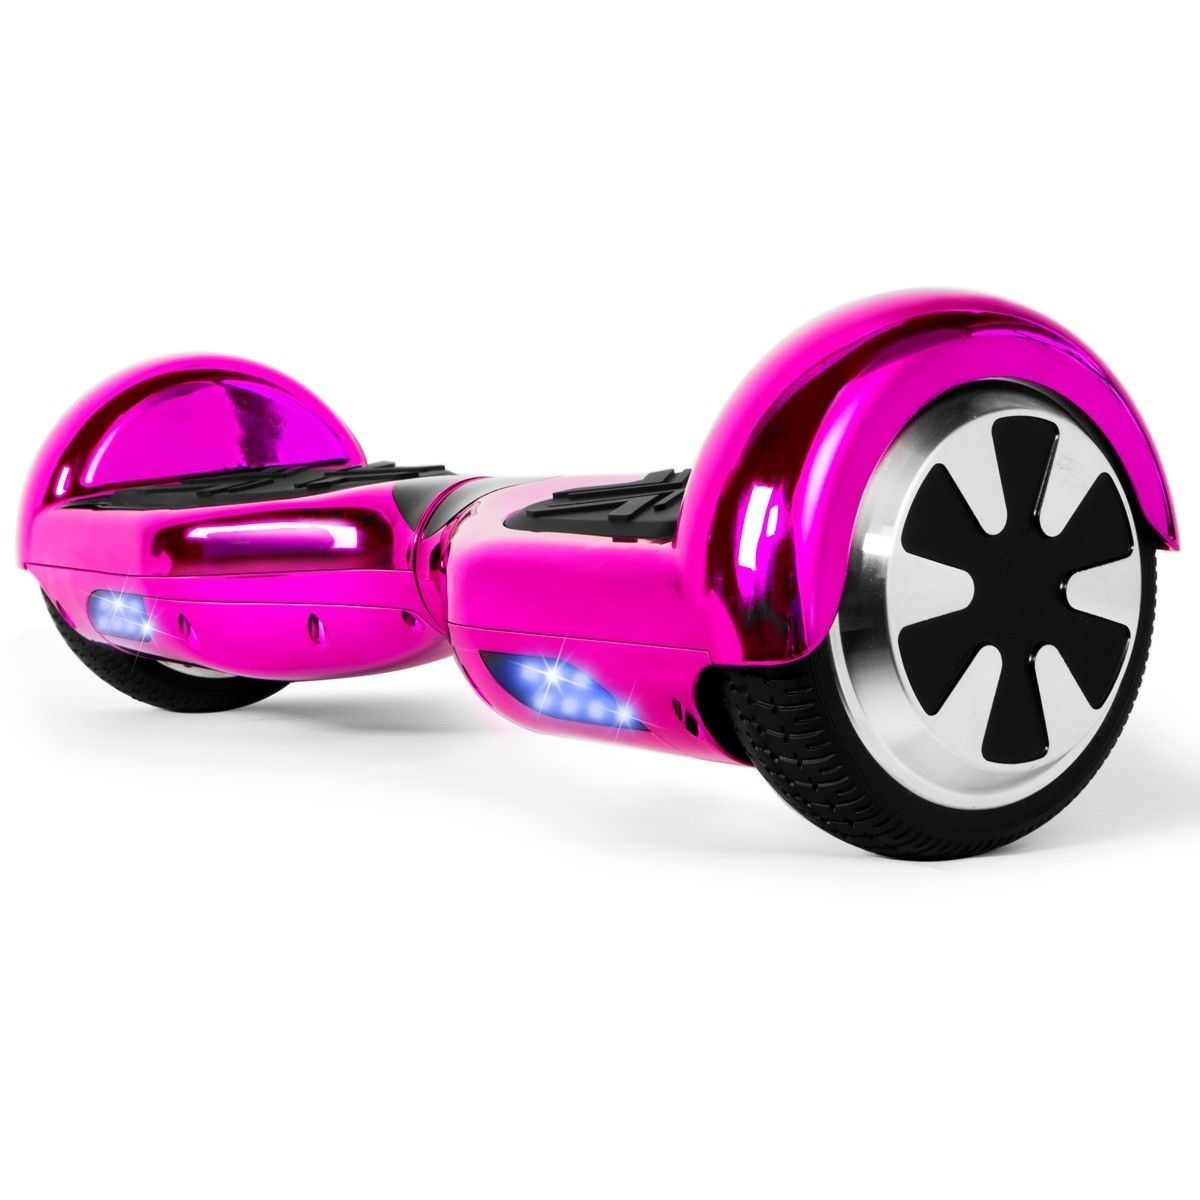 Chrome Hot Pink Extreme Bluetooth 6.5 Hoverboard Two Wheel Balance Scooter UL